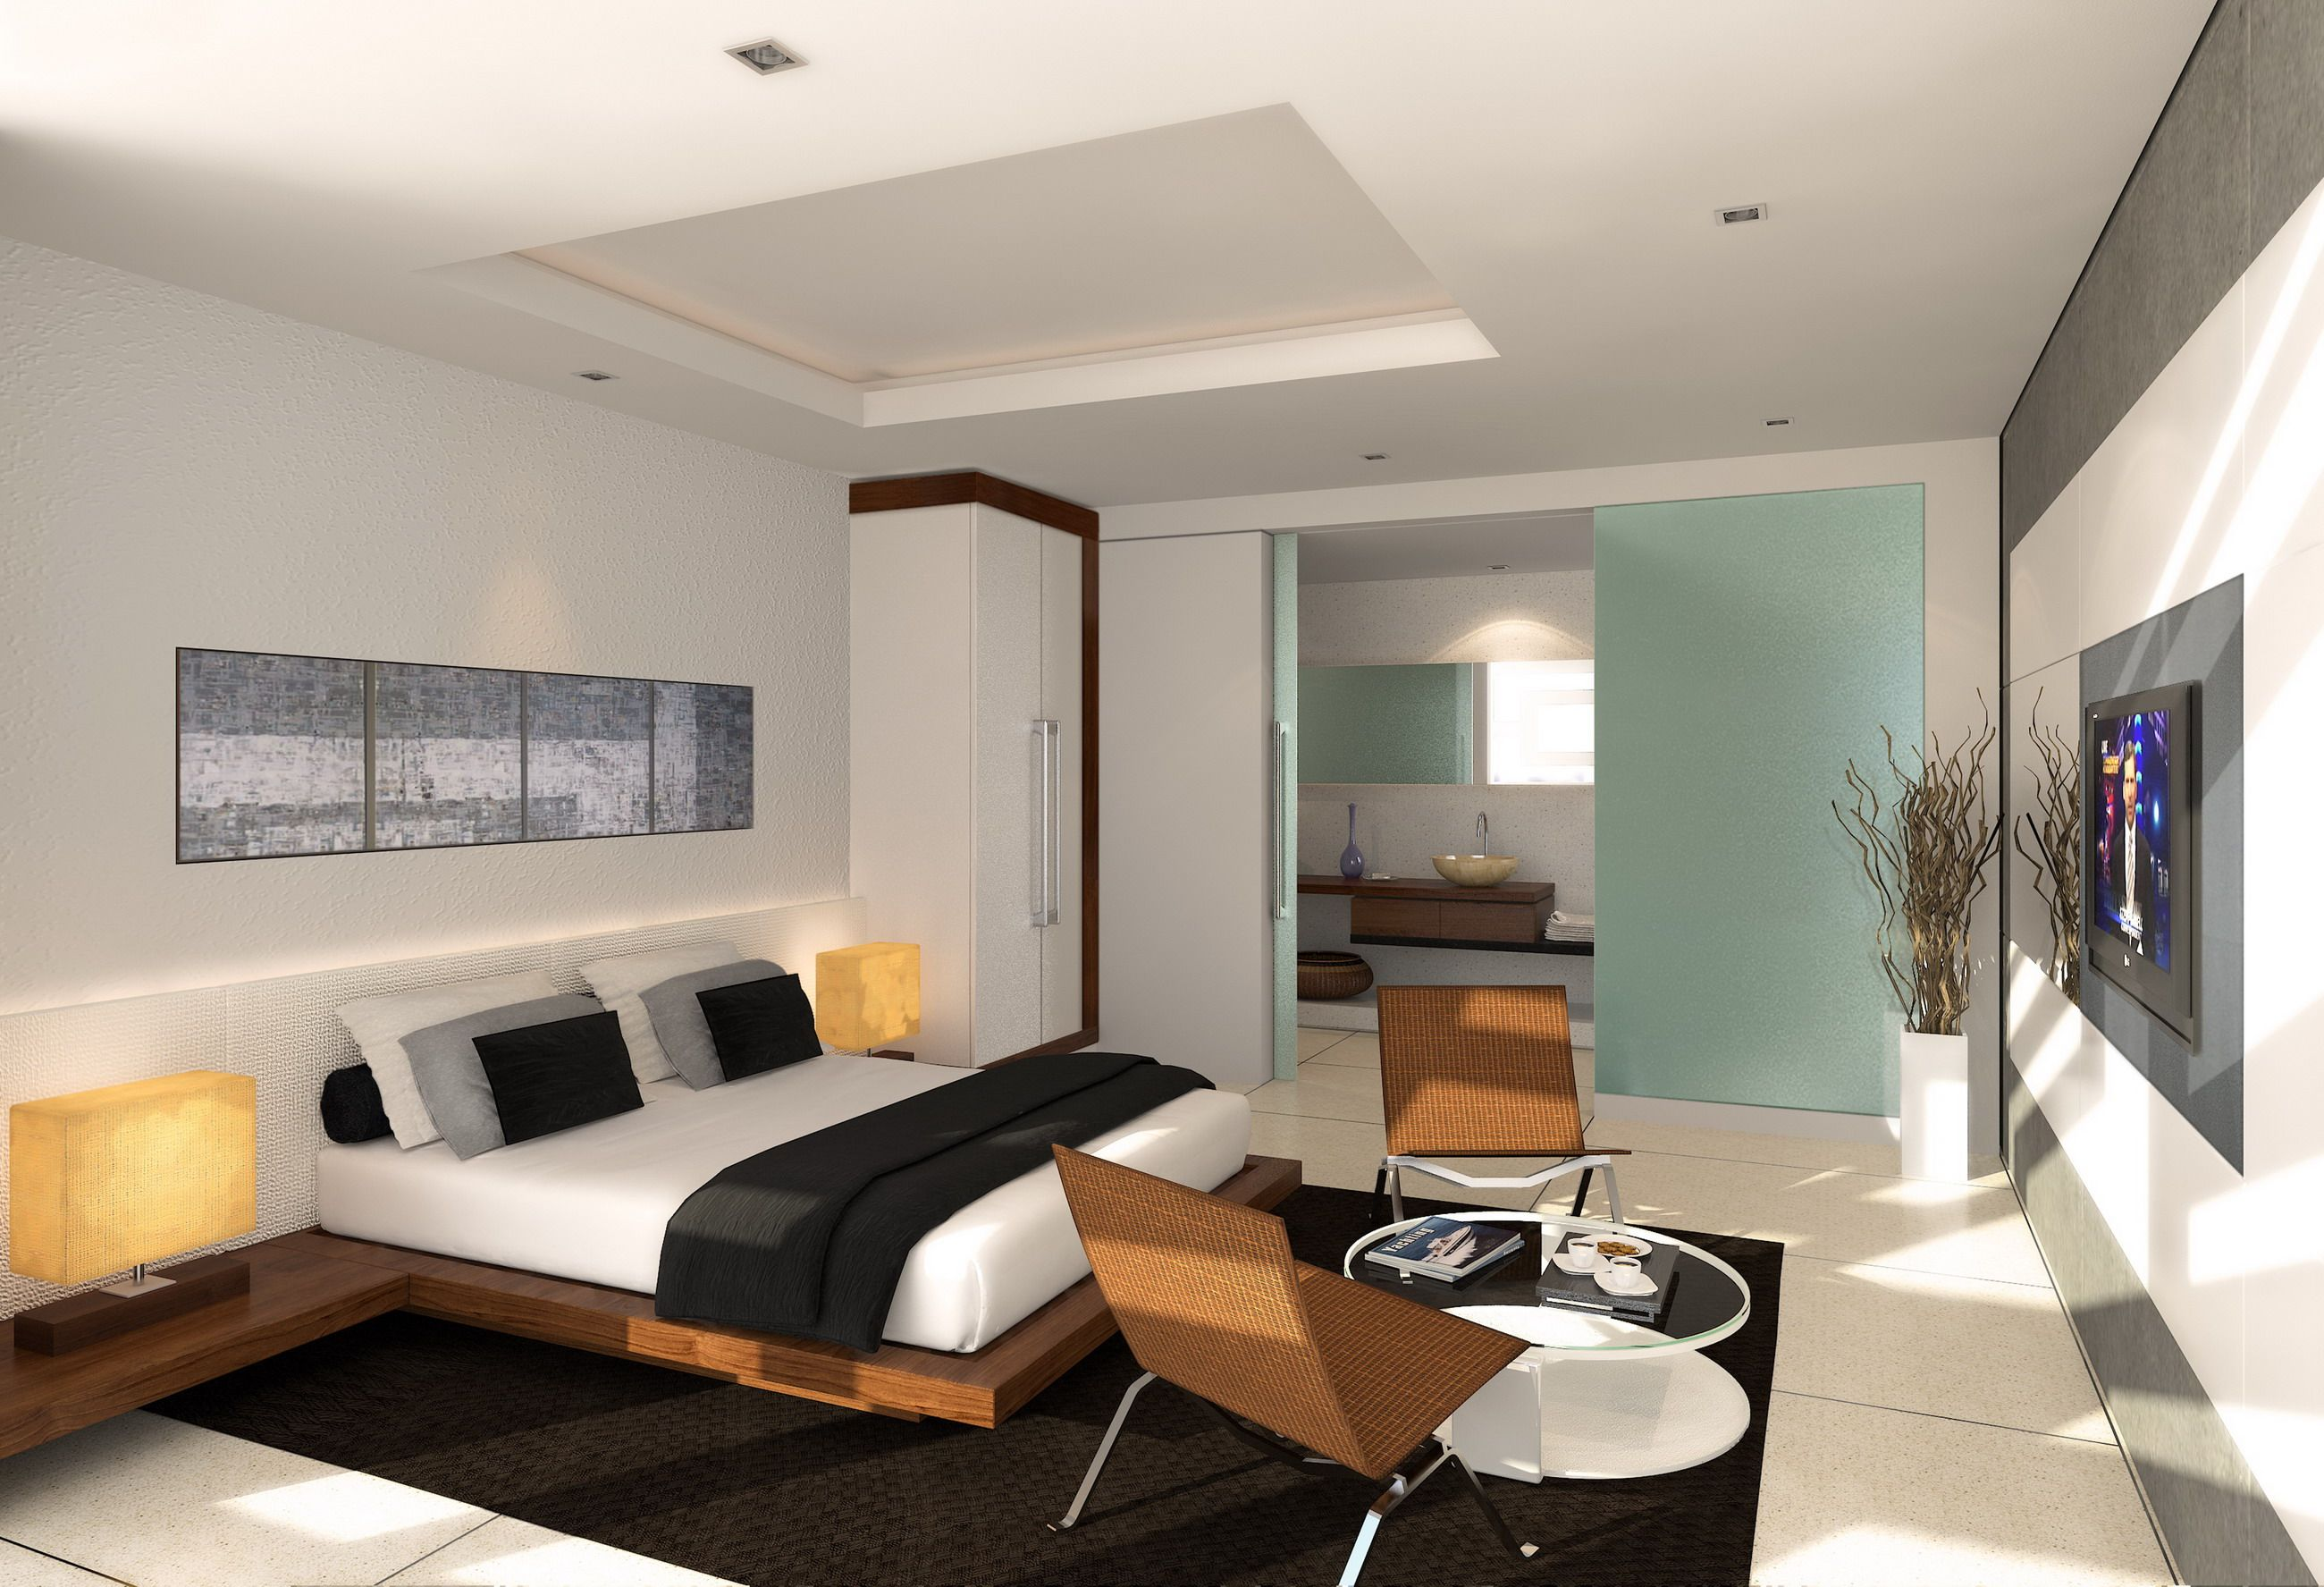 Bedroom Awesome Bedroom Decorating Ideas For Small Apartments With Classic Coupl Apartment Bedroom Design Modern Master Bedroom Design Small Apartment Bedrooms